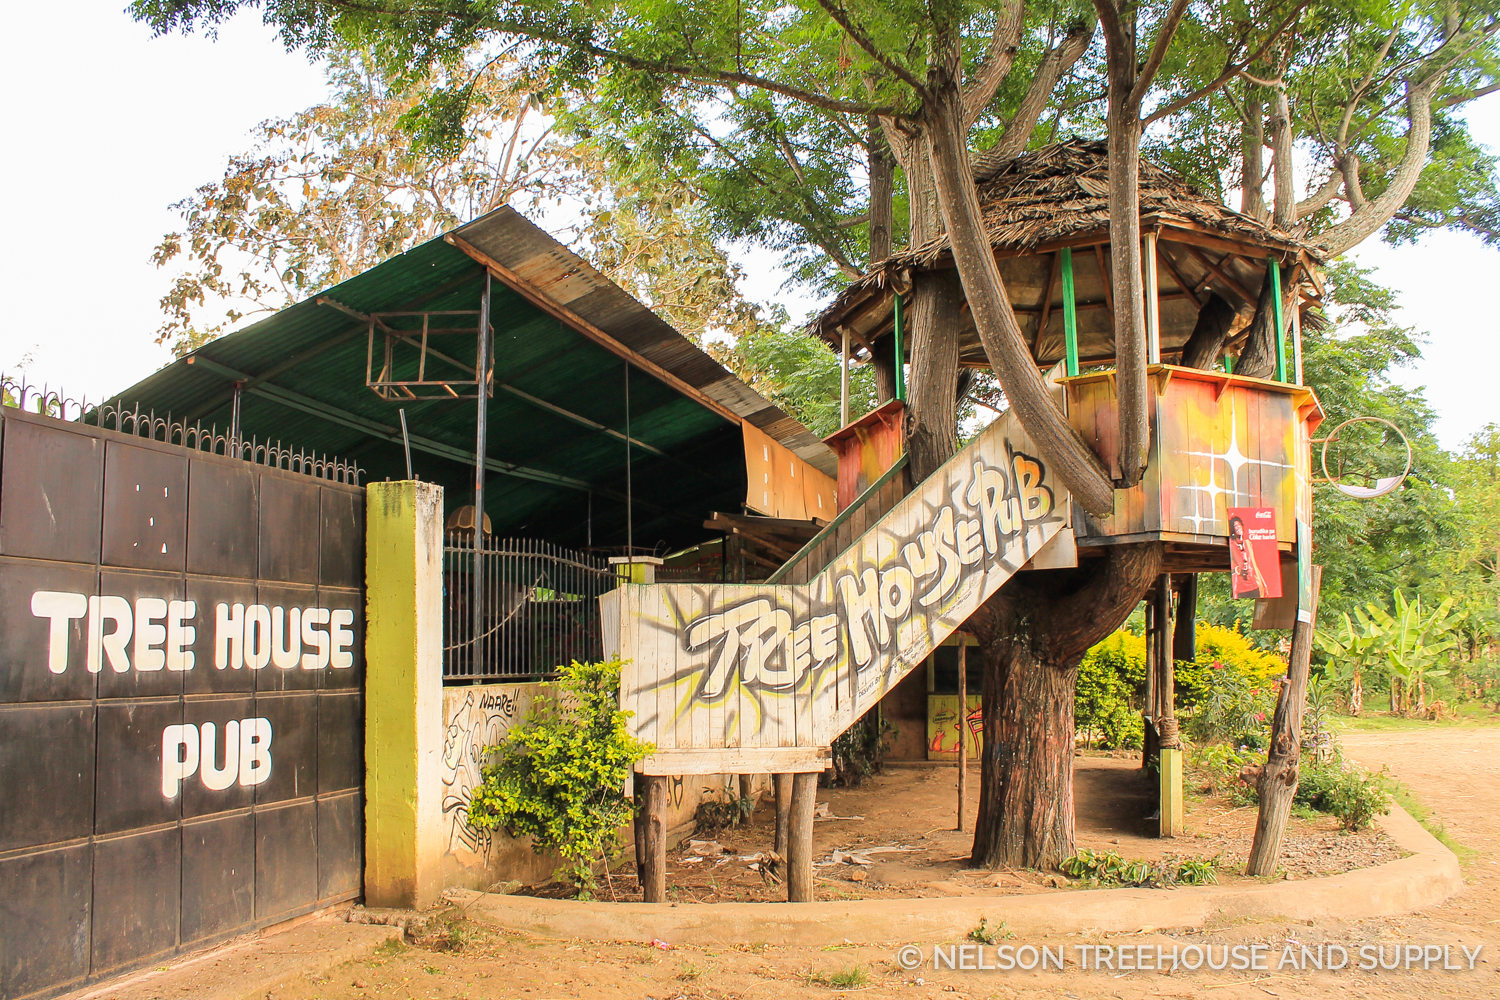 Treehouse Pub in Tanzania. Photo by Dylan Rauch.